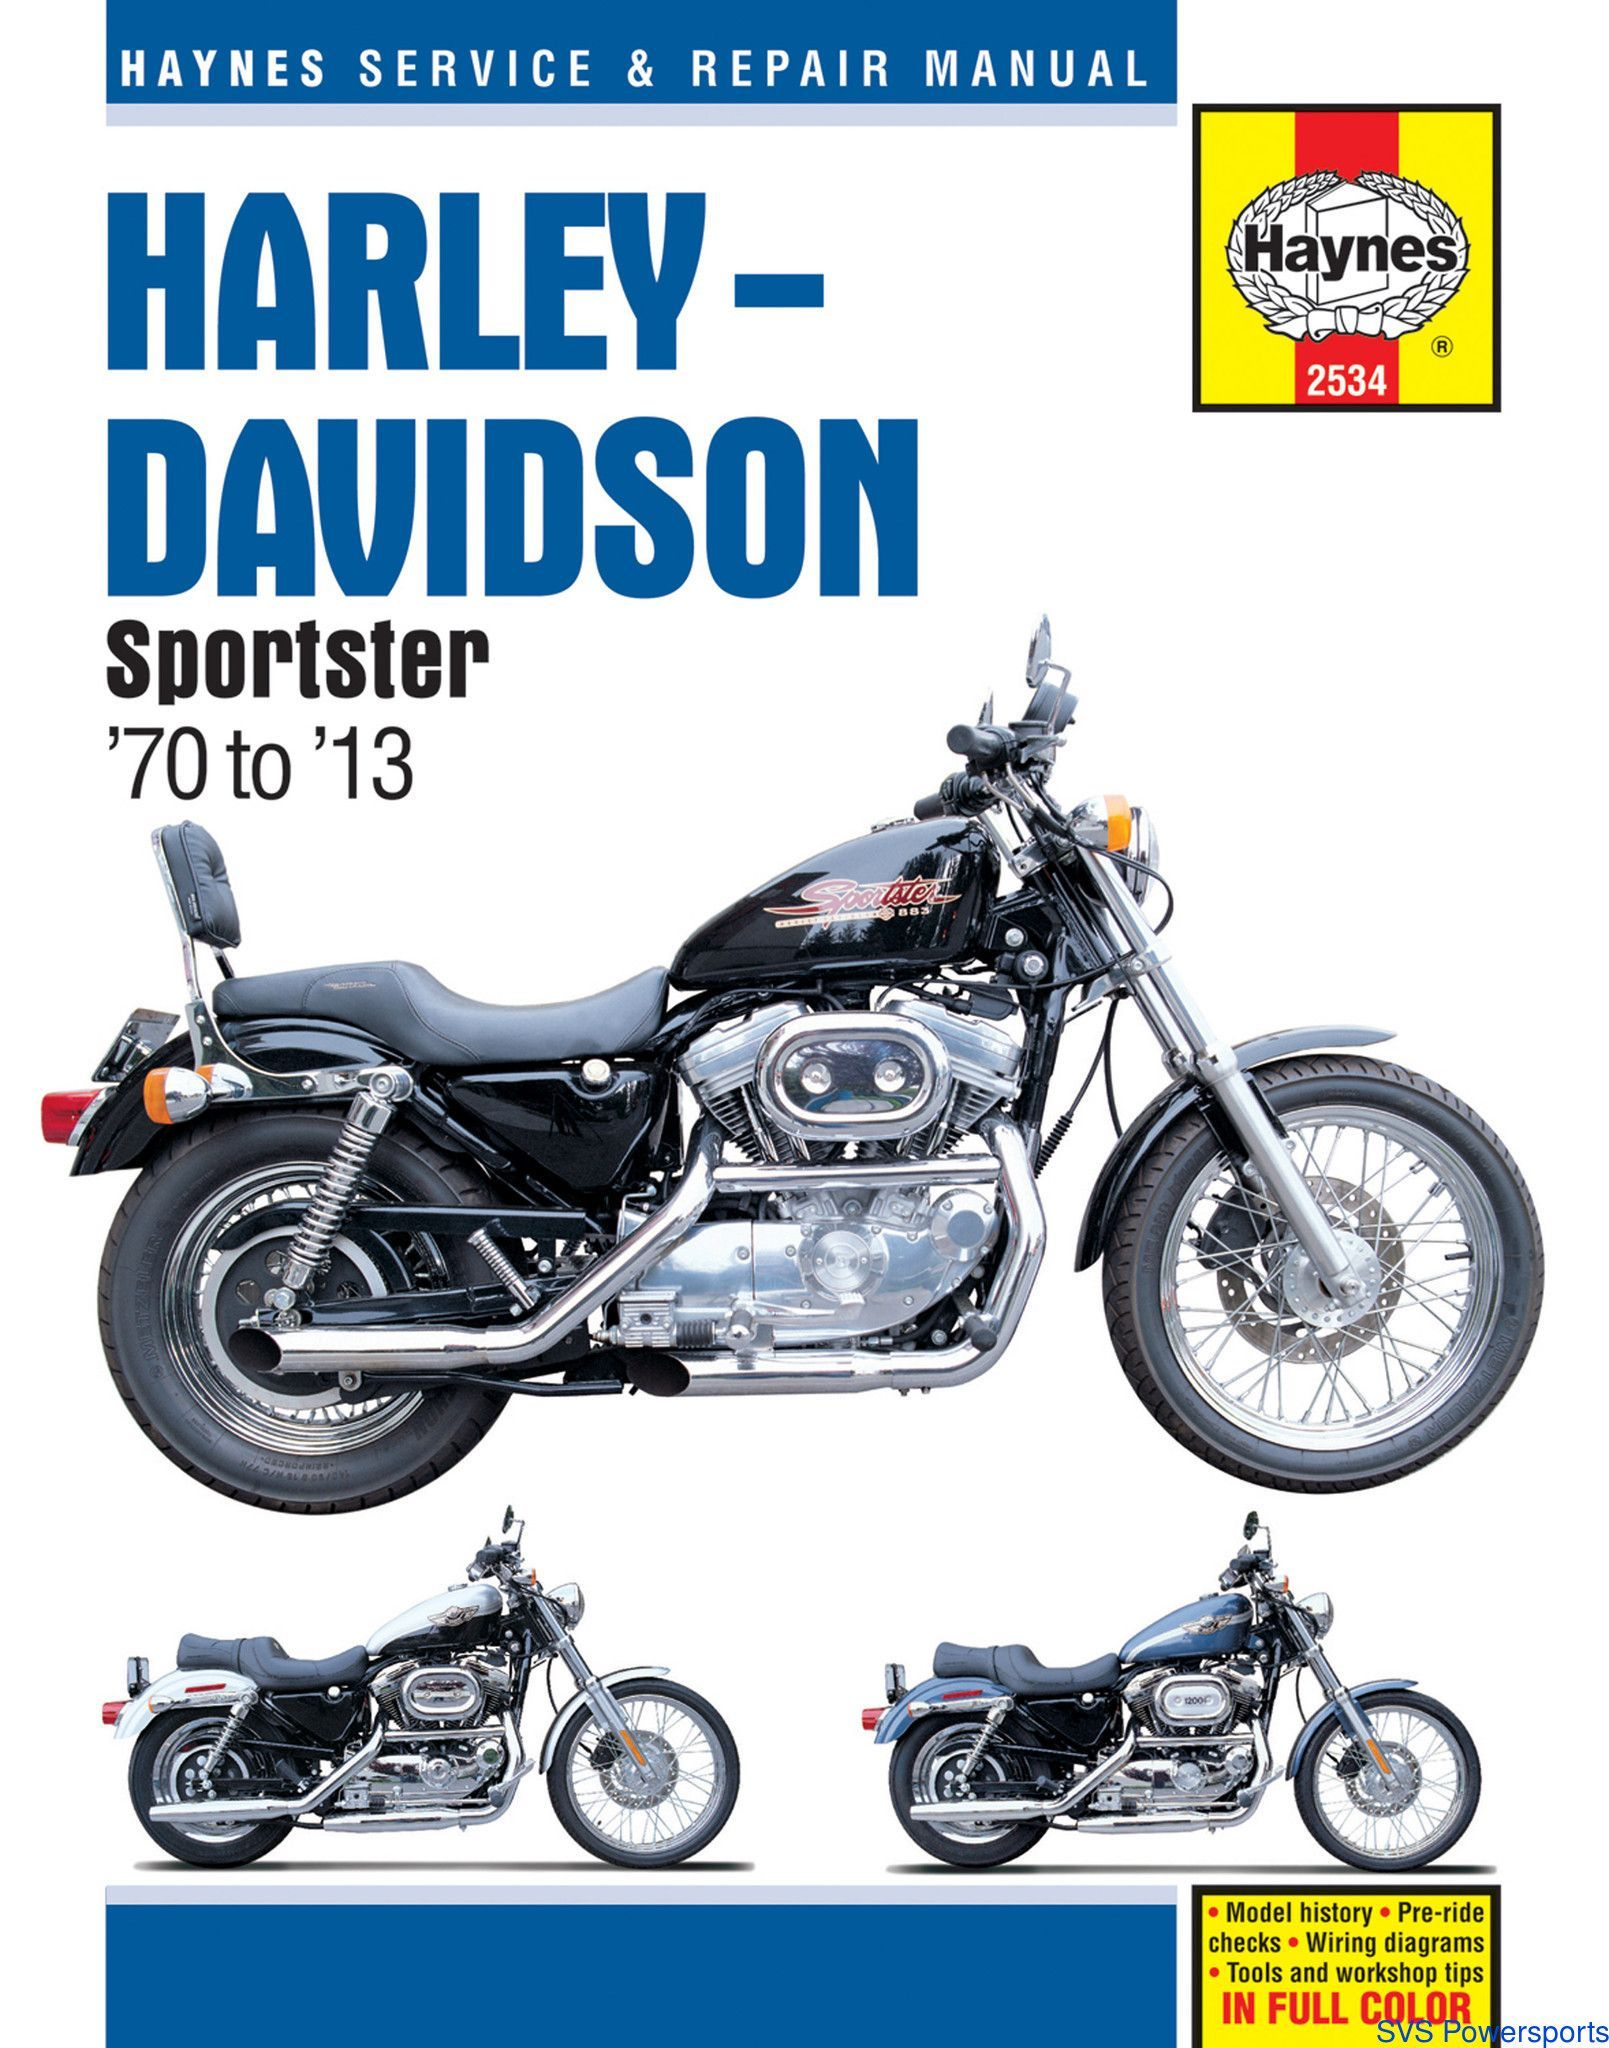 haynes m2534 repair manual for 1970 13 harley davidson sportsters xl rh pinterest com Harley Sportster Service Manual Harley-Davidson Sportster 1200 Manual